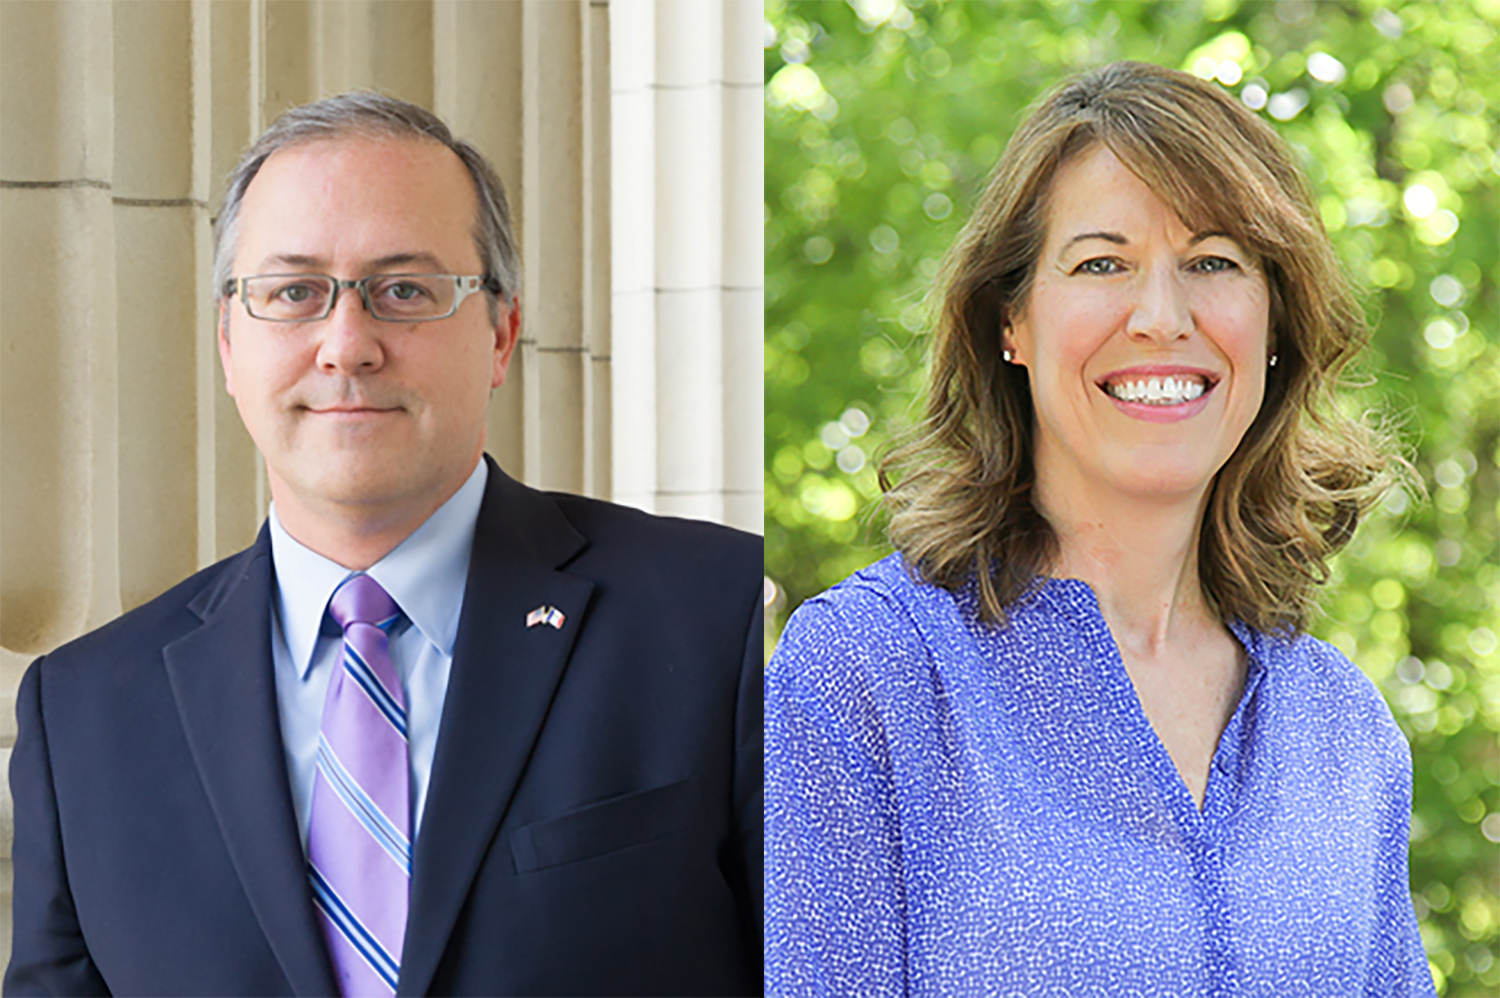 Republican David Young (left) is running against Democrat Cindy Axne (right) to keep his seat in the U.S. House of Representatives for Iowa's 3rd District.